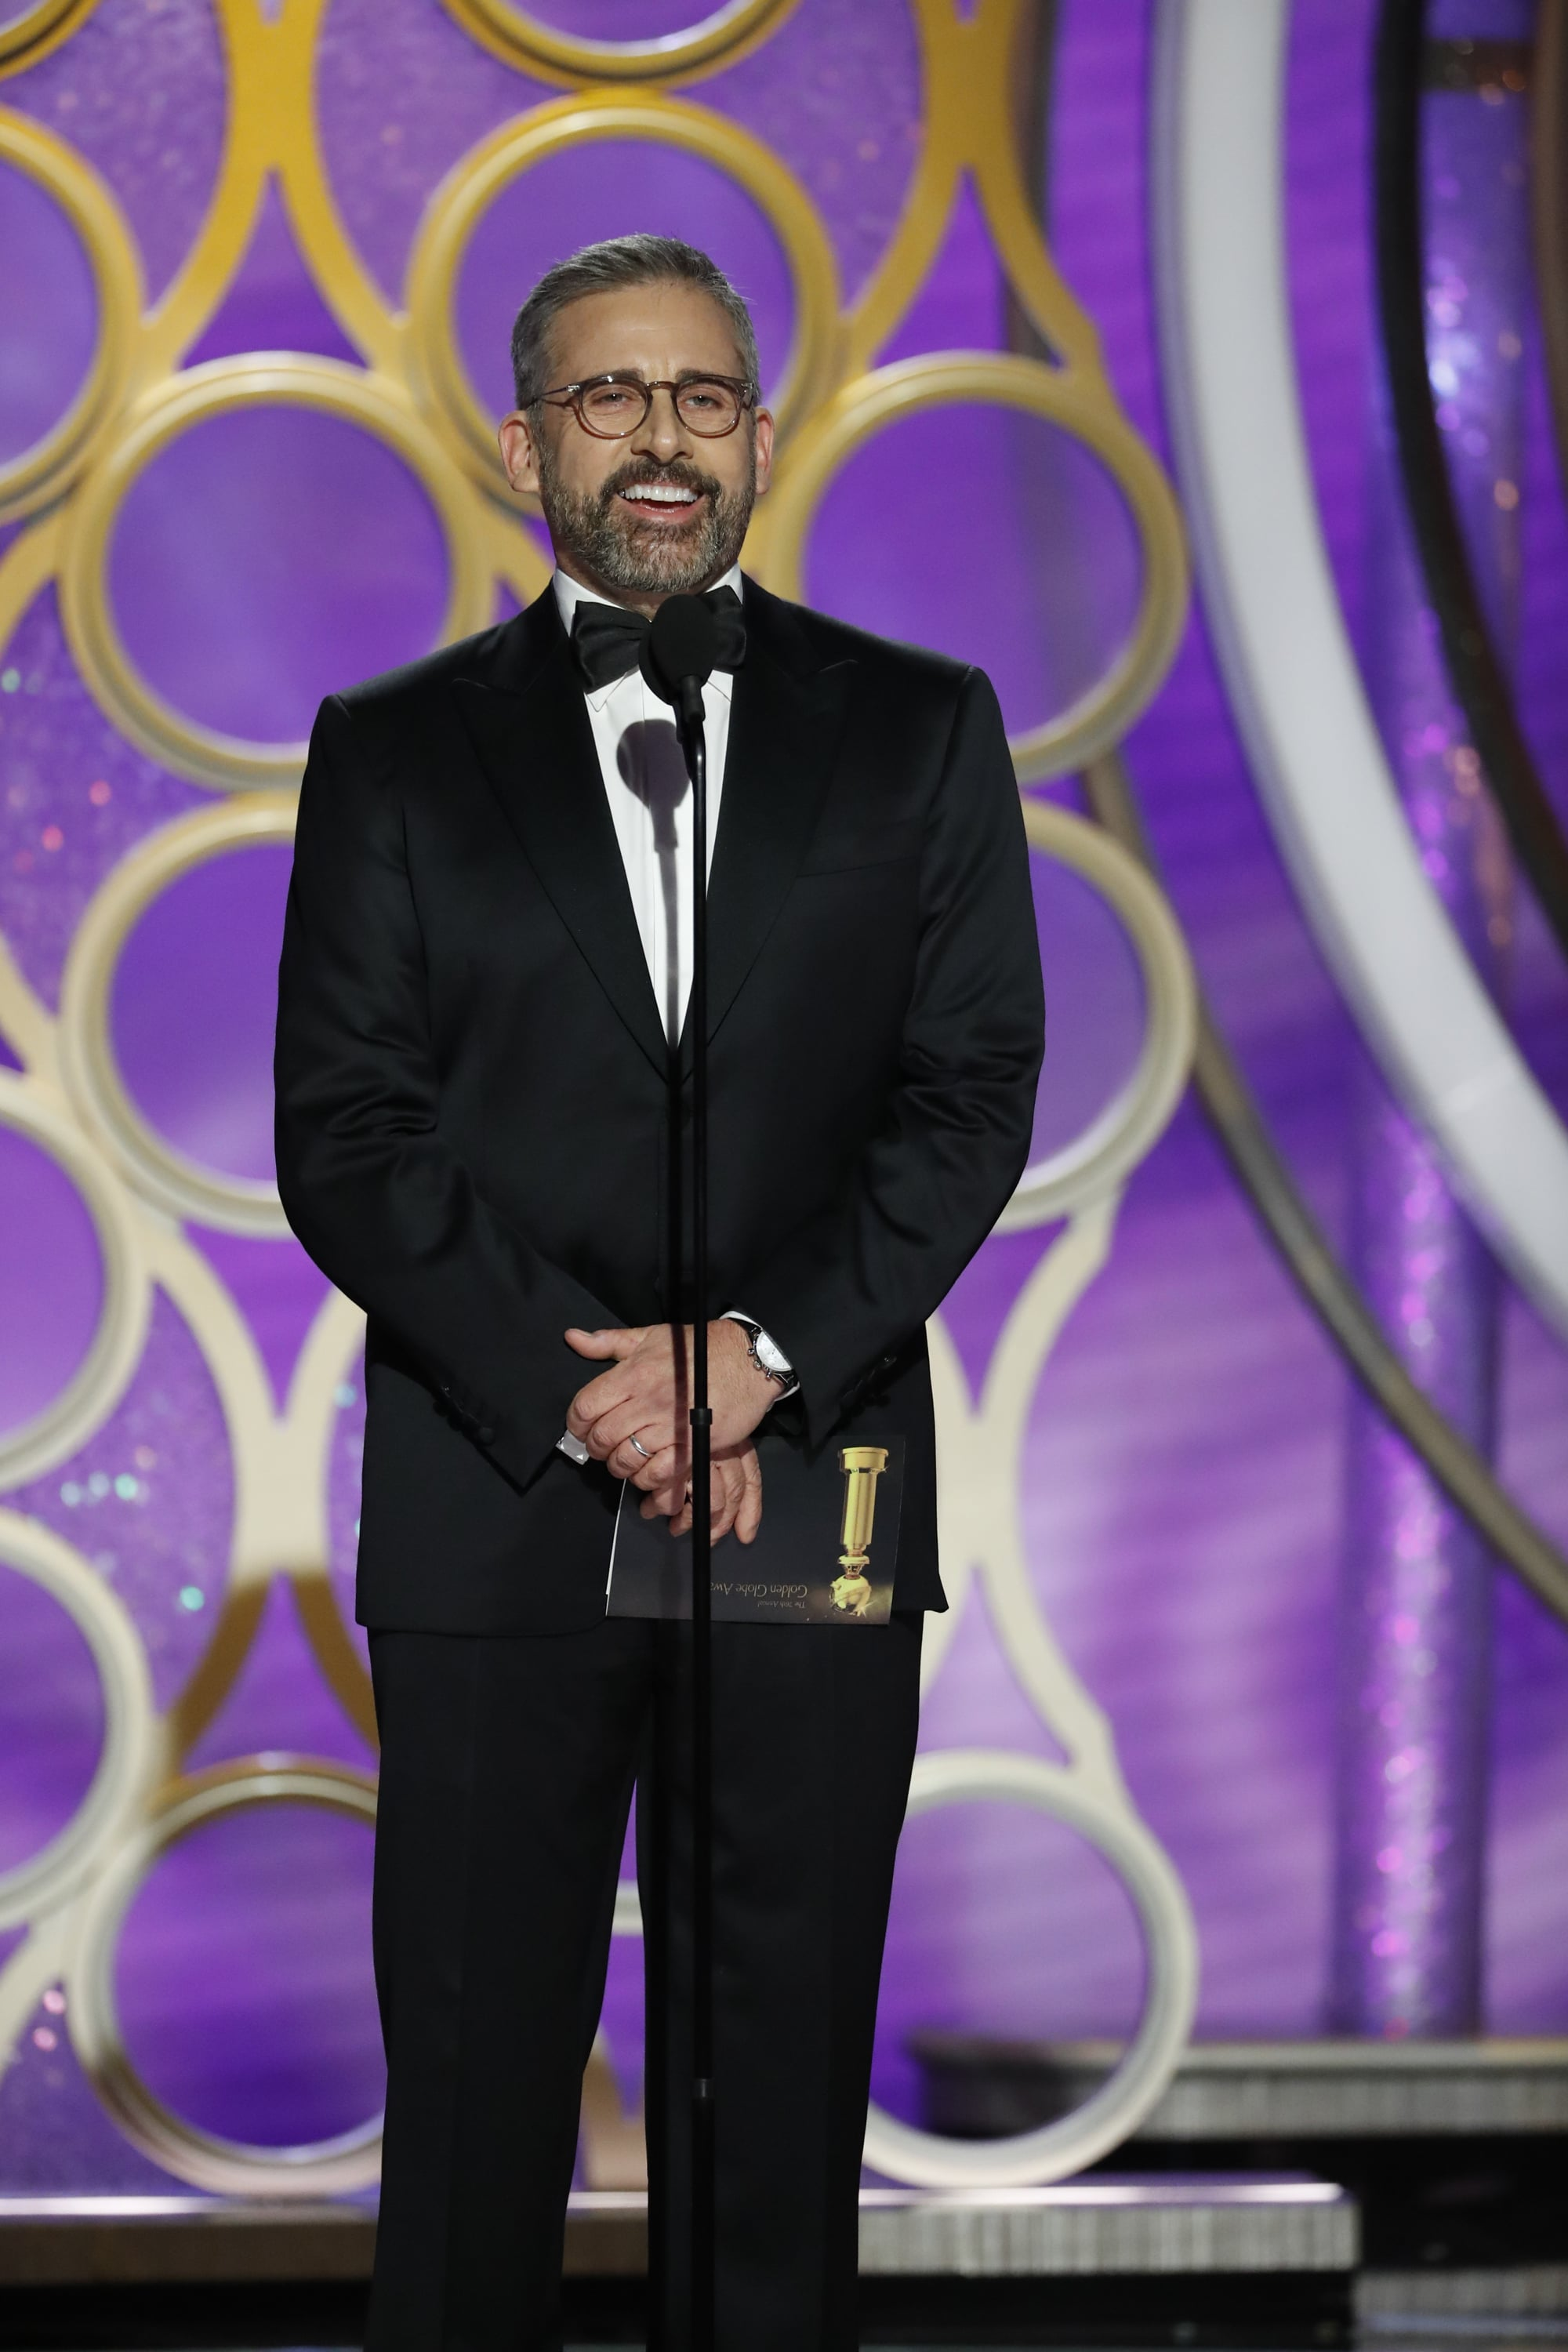 BEVERLY HILLS, CALIFORNIA - JANUARY 06: In this handout photo provided by NBCUniversal, Presenter Steve Carell  speaks onstage during the 76th Annual Golden Globe Awards at The Beverly Hilton Hotel on January 06, 2019 in Beverly Hills, California.  (Photo by Paul Drinkwater/NBCUniversal via Getty Images)